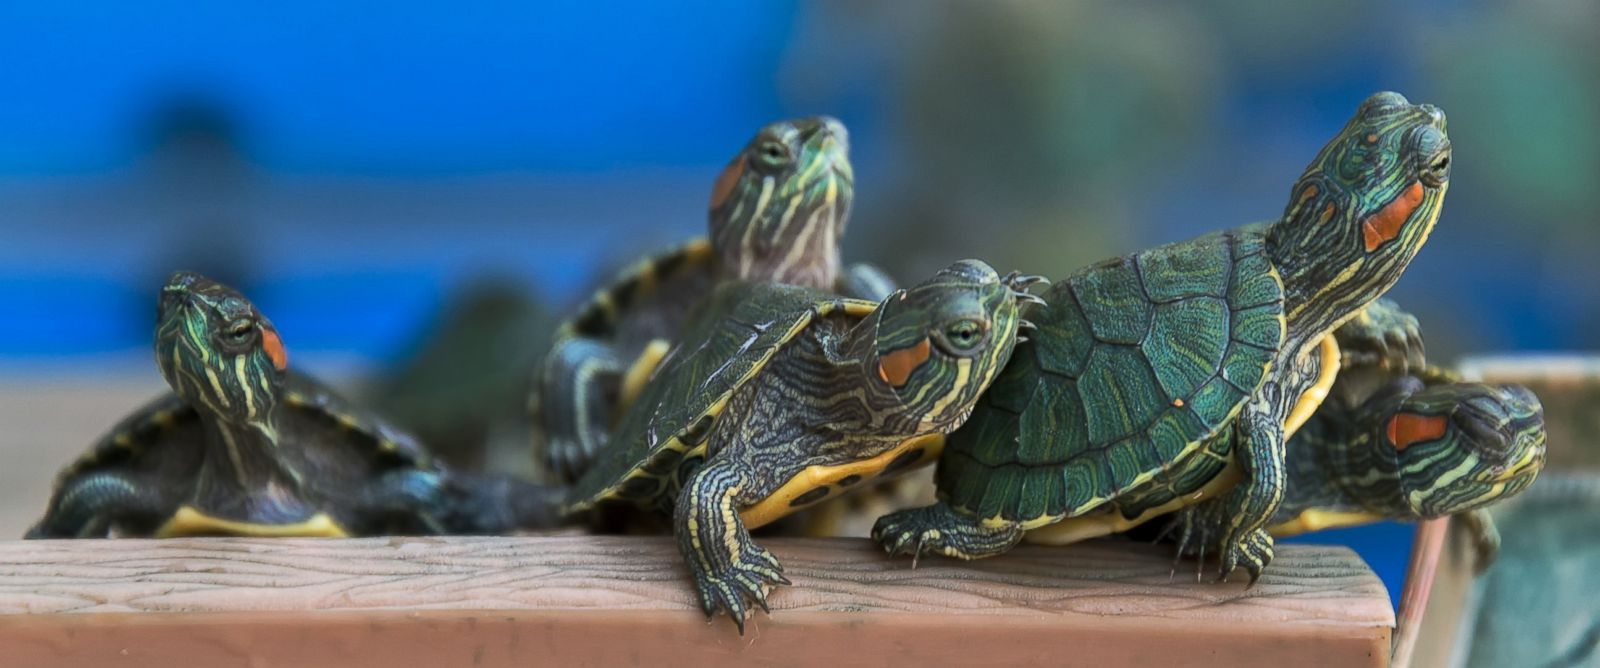 R Turtles Good Pets Top 10 Pets That Gaine...